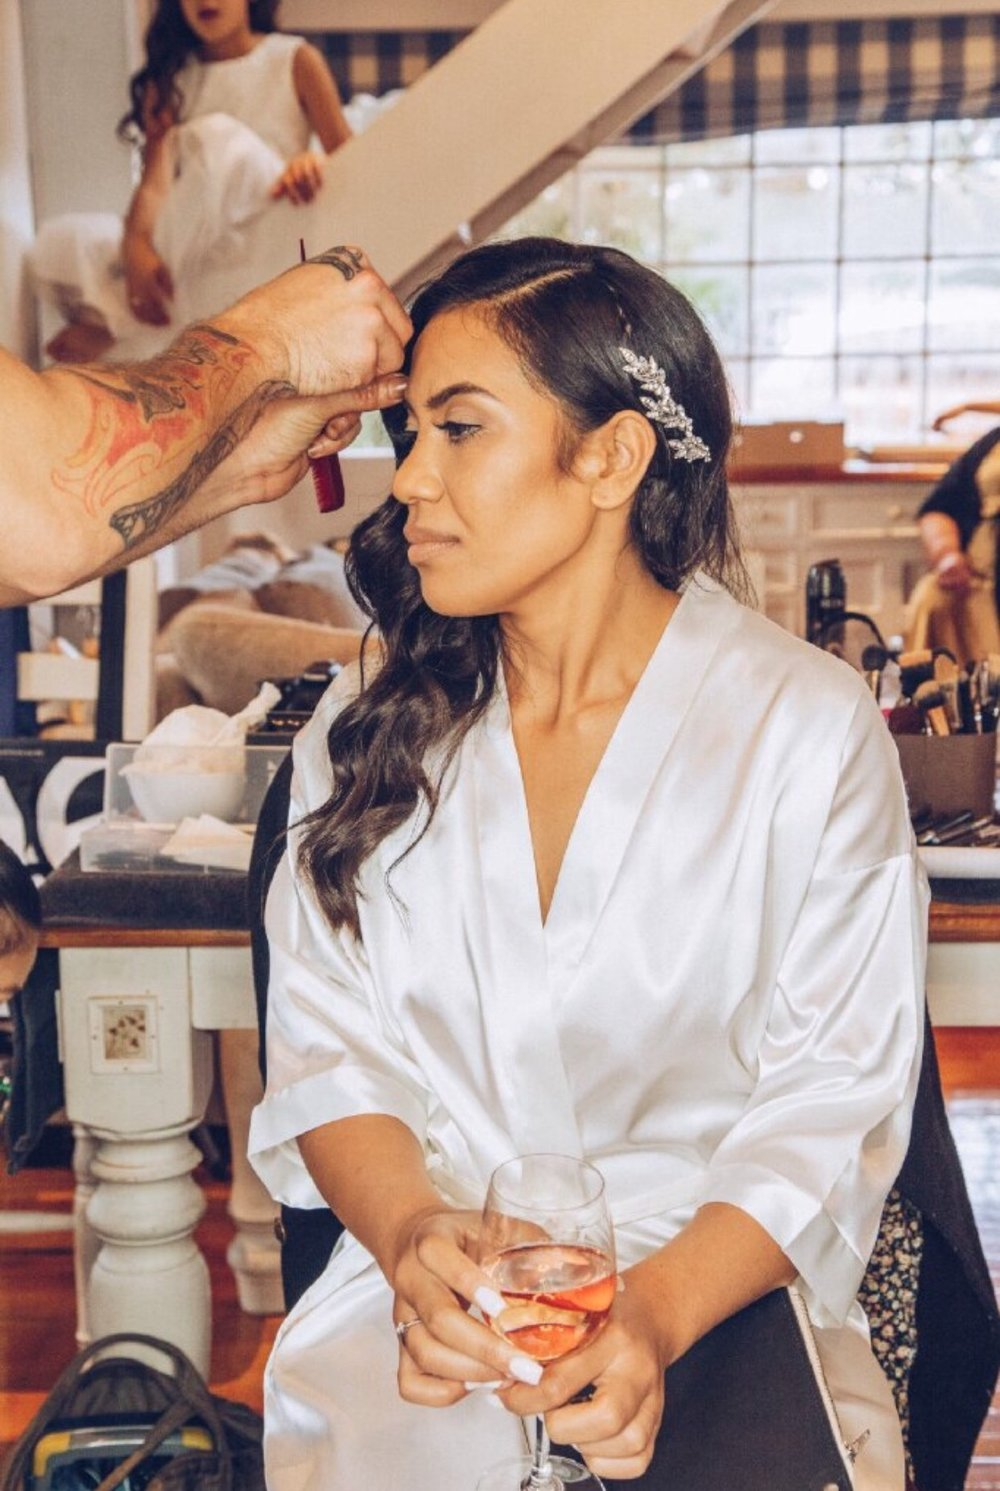 Bridal makeup $120.00 - This service is offered when booked with one or more bridesmaids. Feel picture perfect with a 60-80 minute Bridal makeover. This includes a touch-up kit including blot paper & lipstick for you and your bridesmaids.